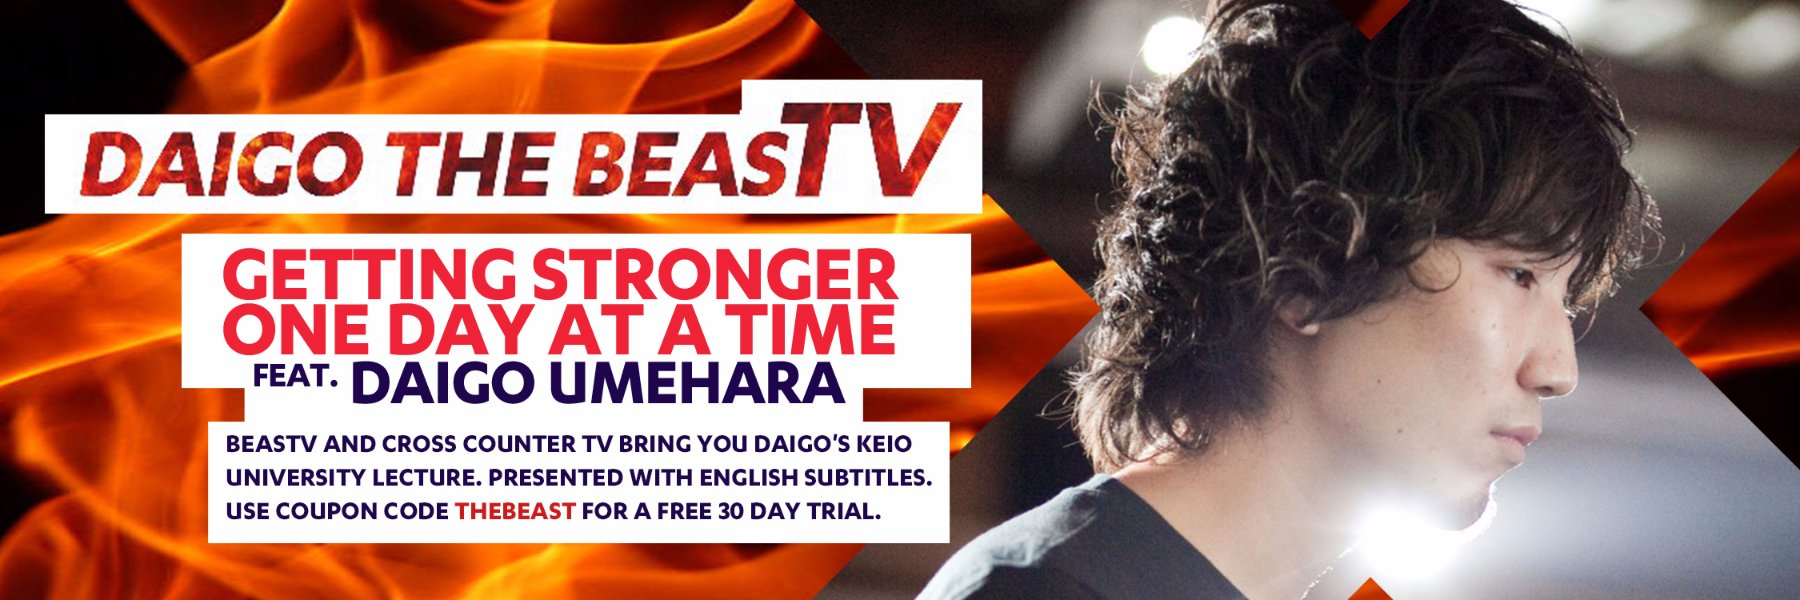 BeasTV and Cross Counter team up to bring you  the wisdom of The Beast